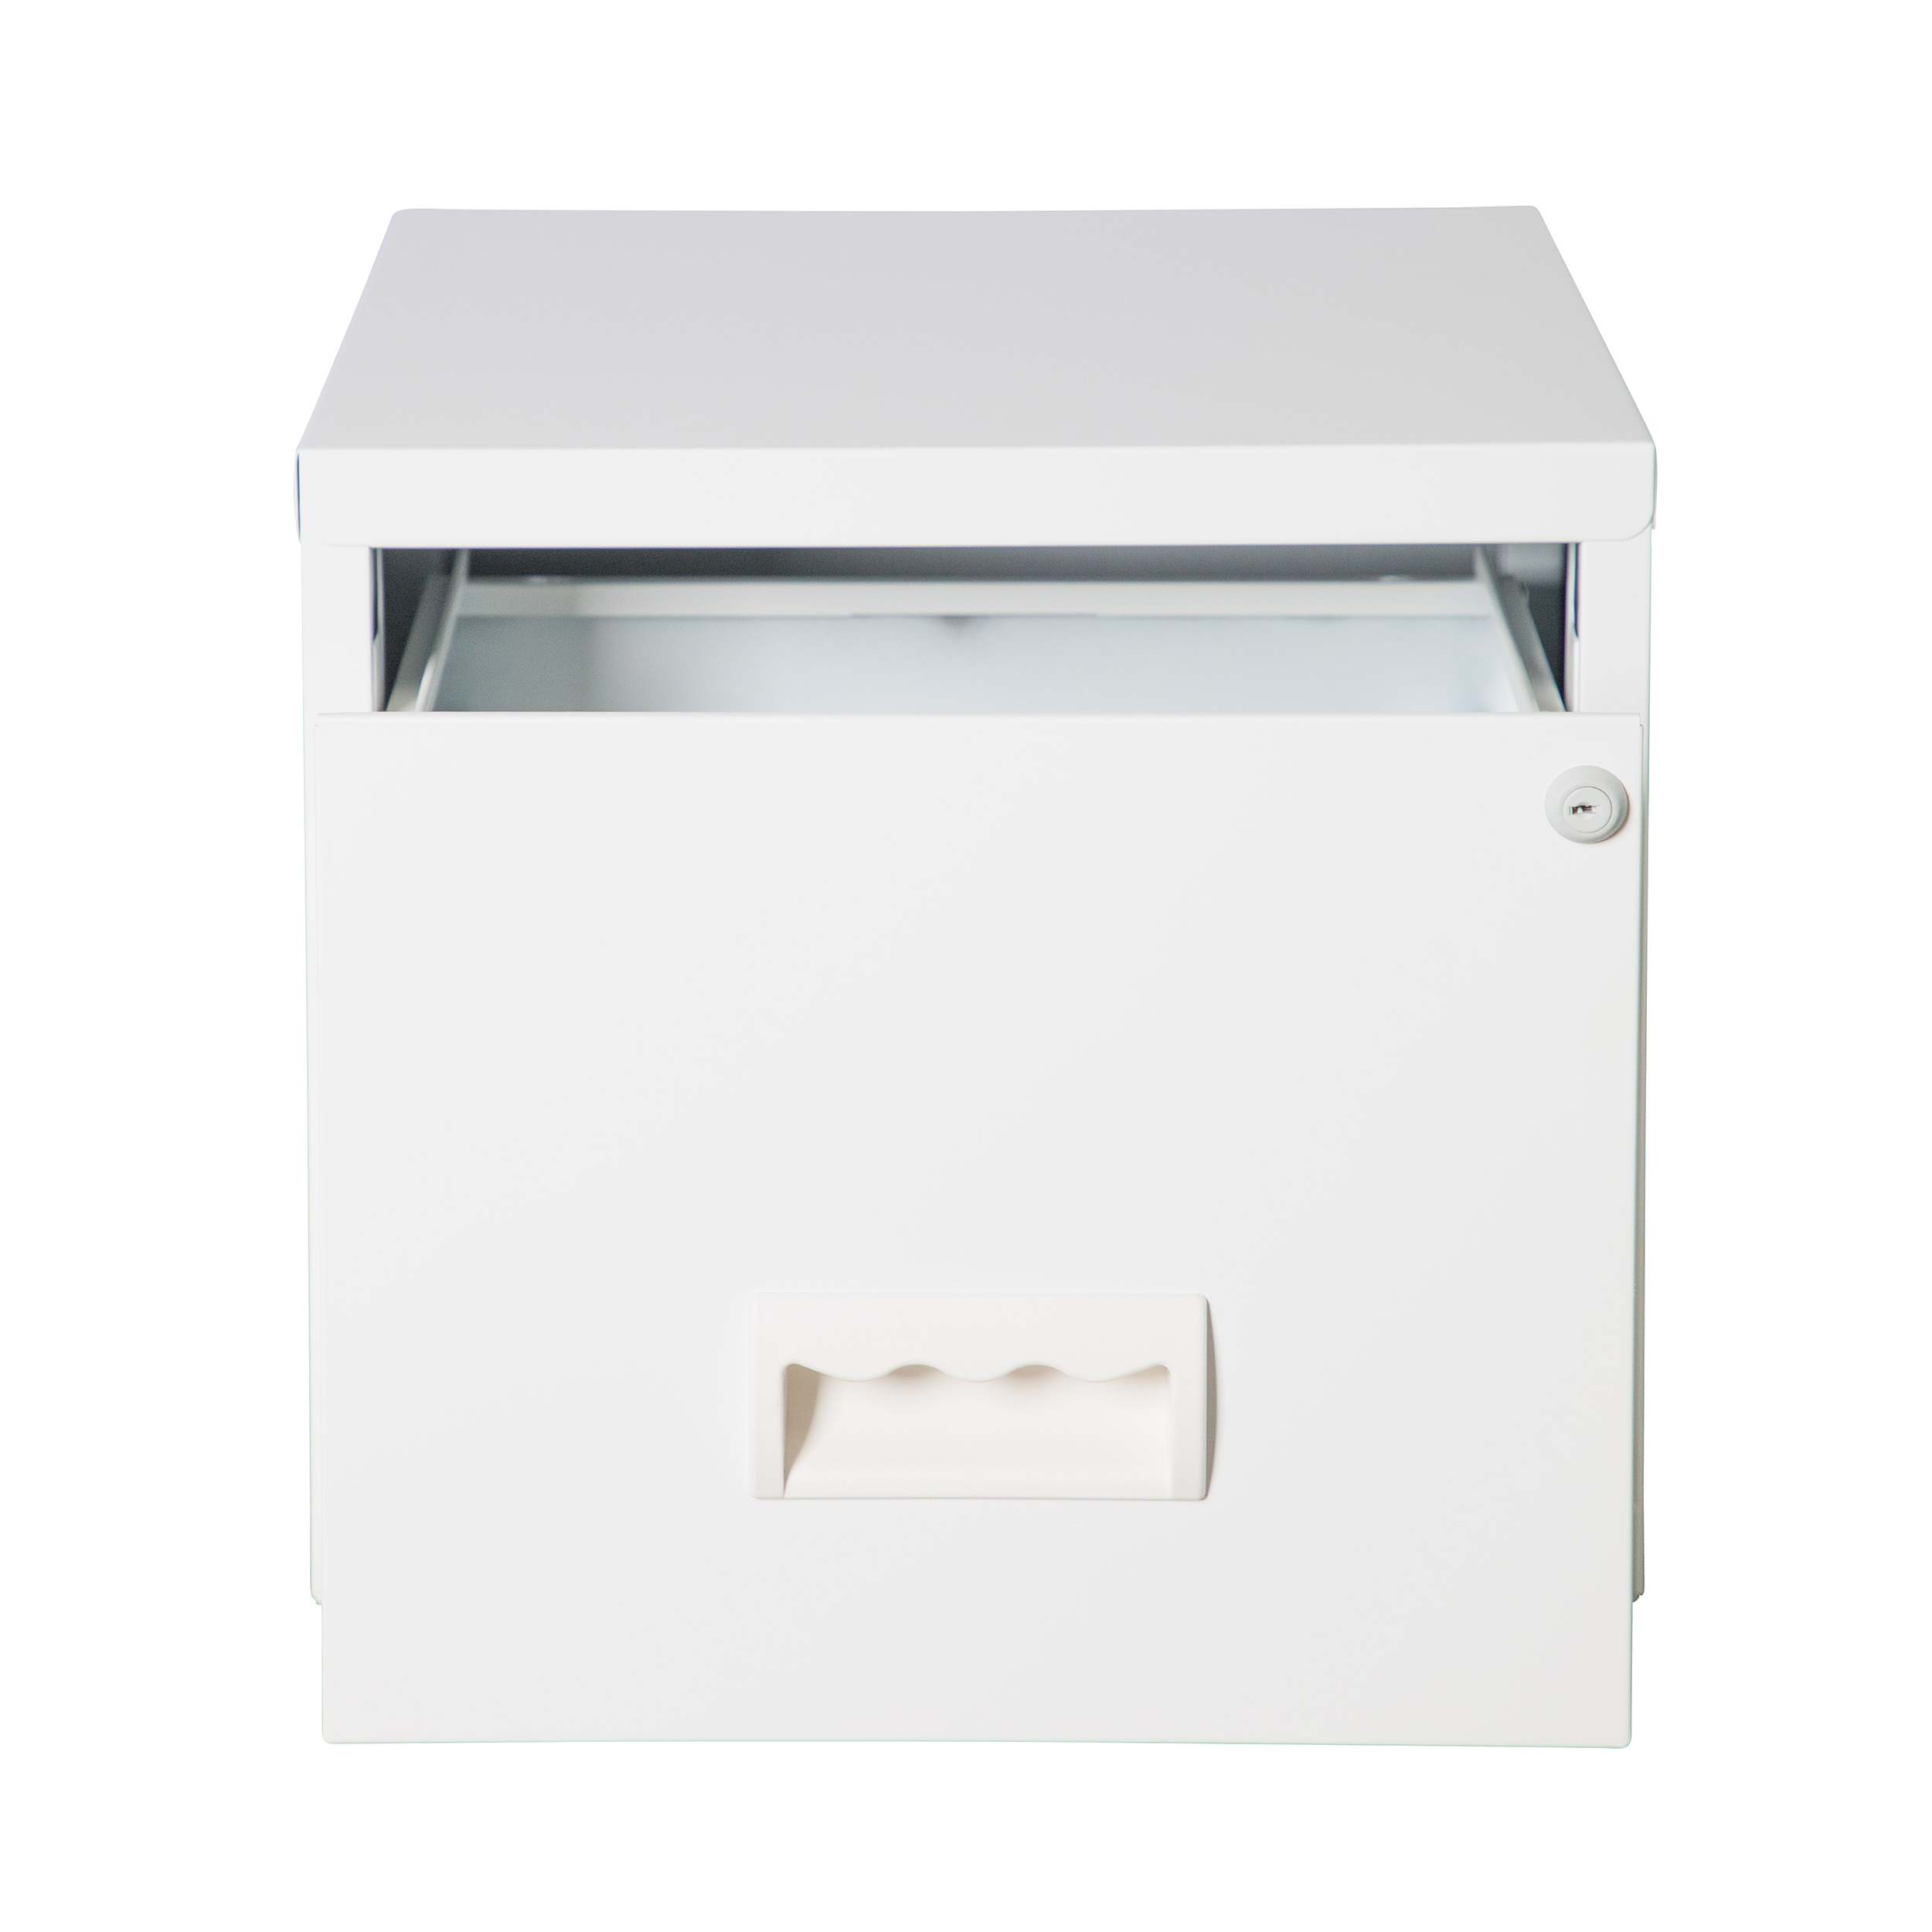 Pierre Henry Maxi Filing Cabinet 1 Drawer A4 White Ref 099020